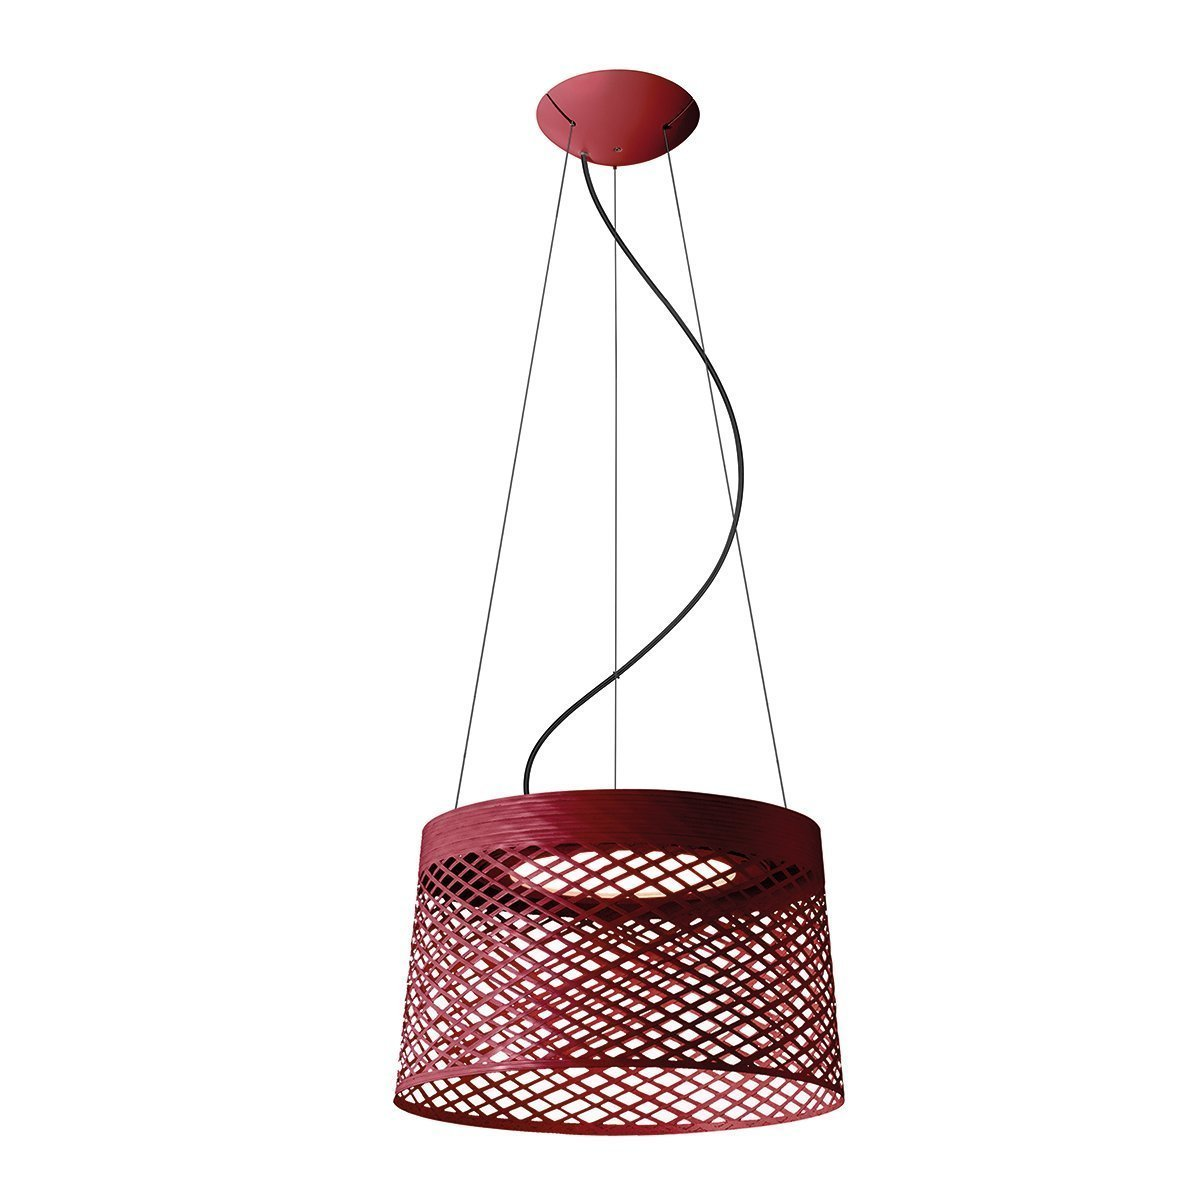 Foscarini Twiggy Grid Outdoor Hanglamp - Rood